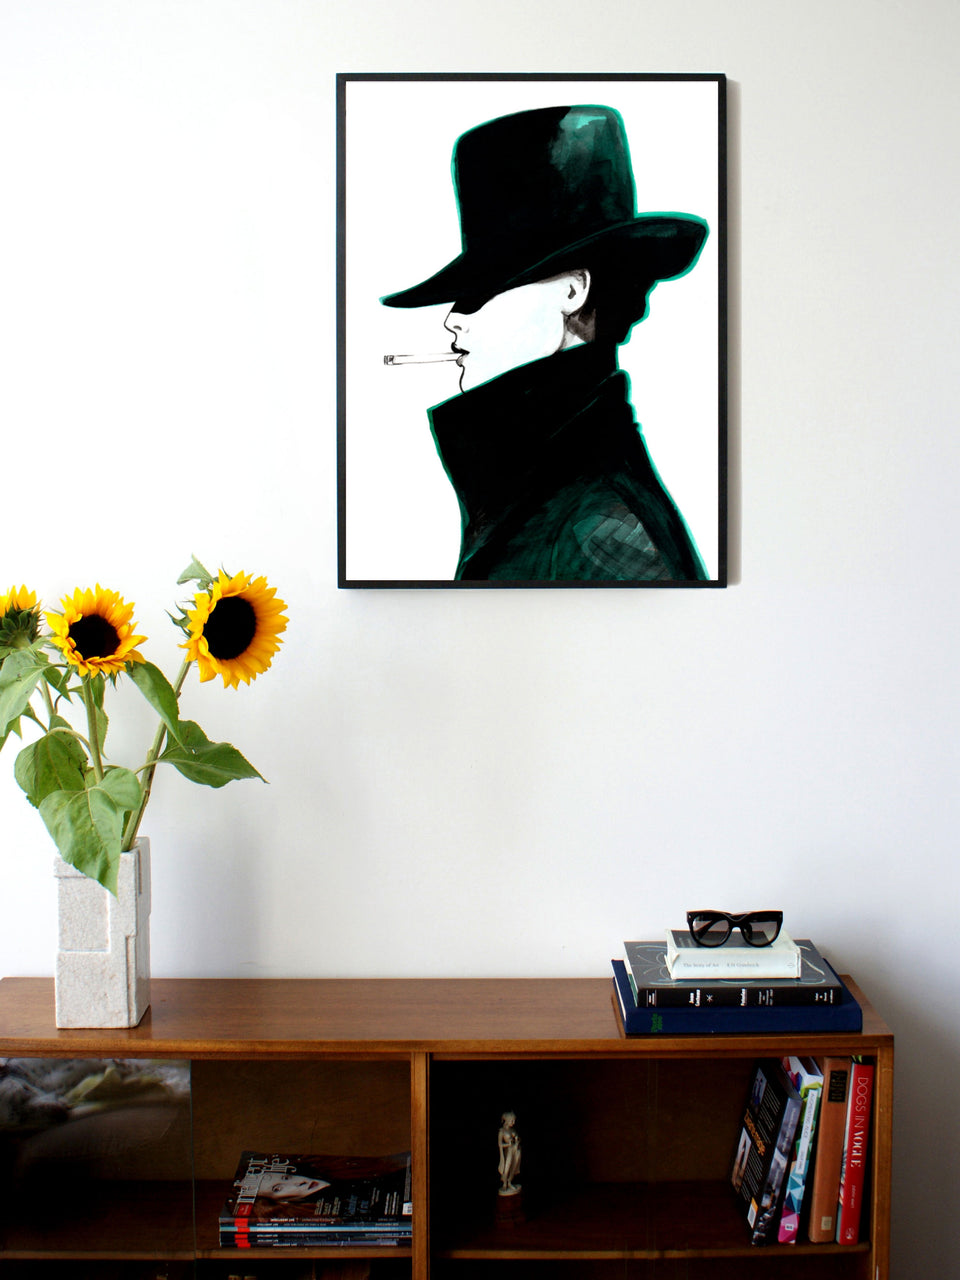 Fashion illustration print of Hat by Sjoukje Bierma - woman in hat smoking a cigarette - 60 x 80 cm framed